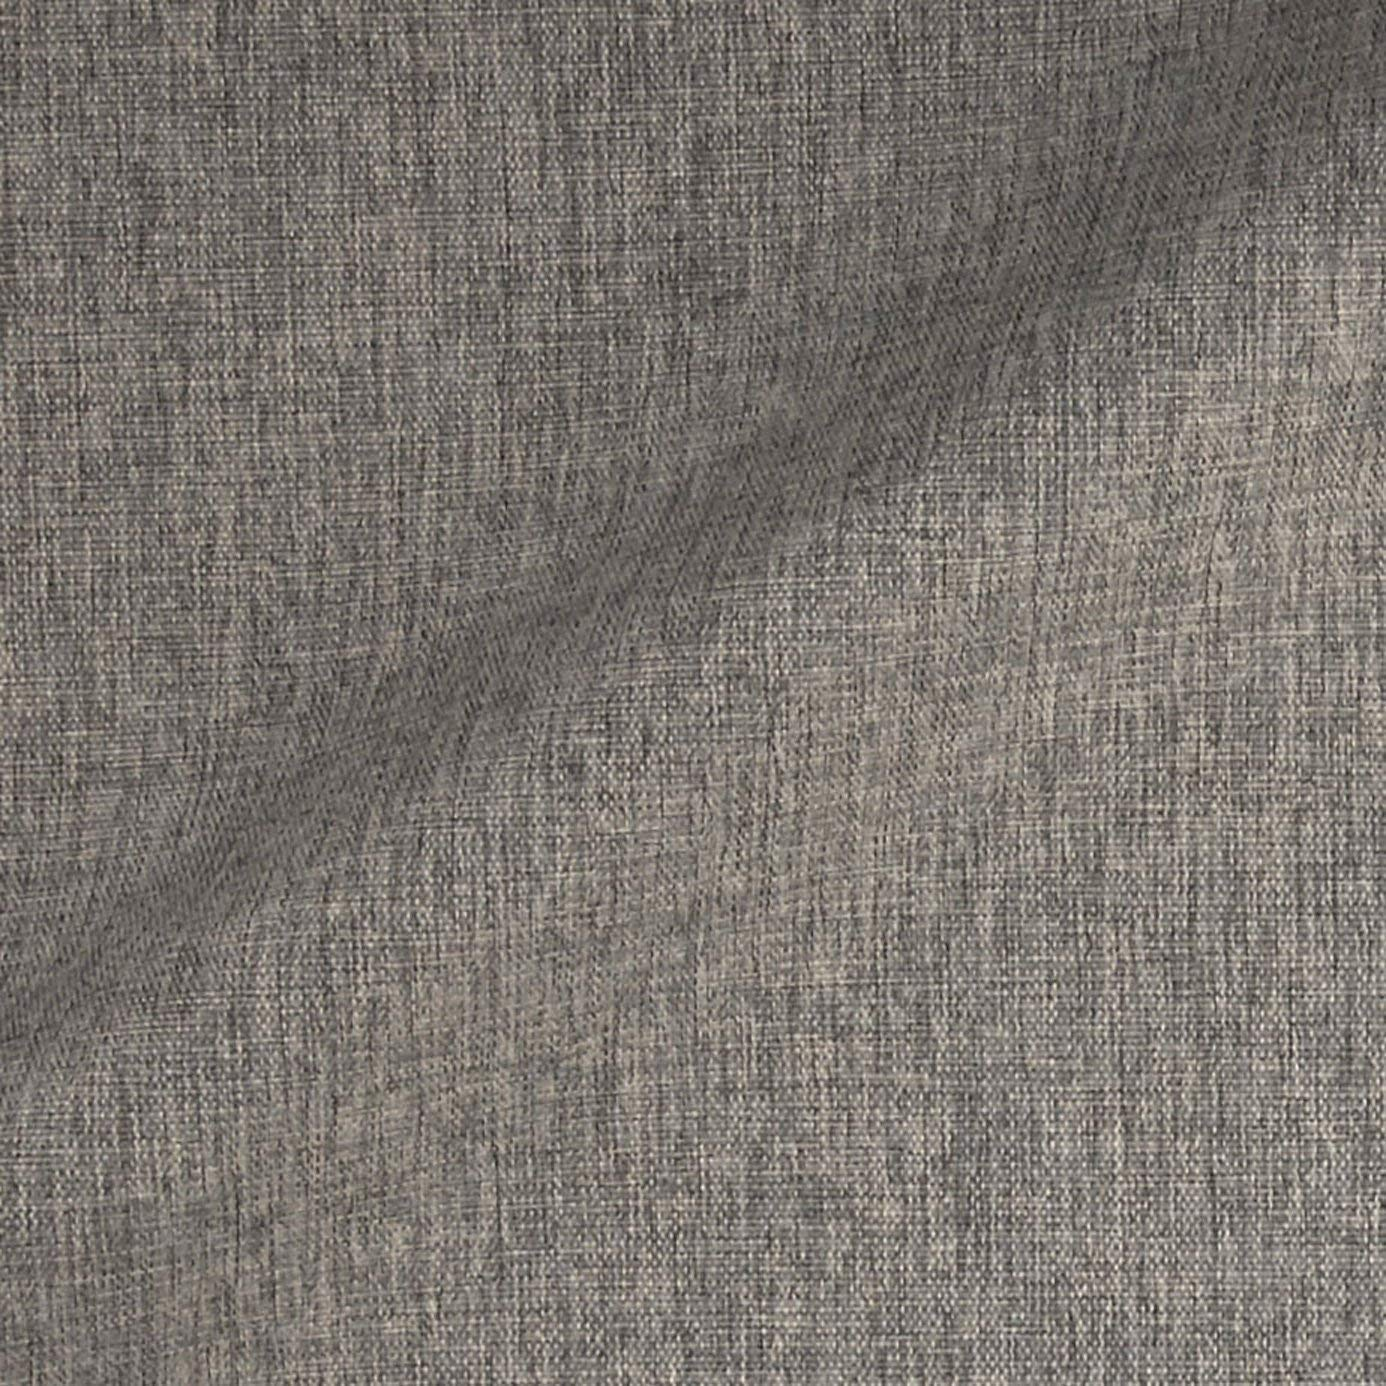 Similar to polyester, olefin is incredibly functional and cost effective